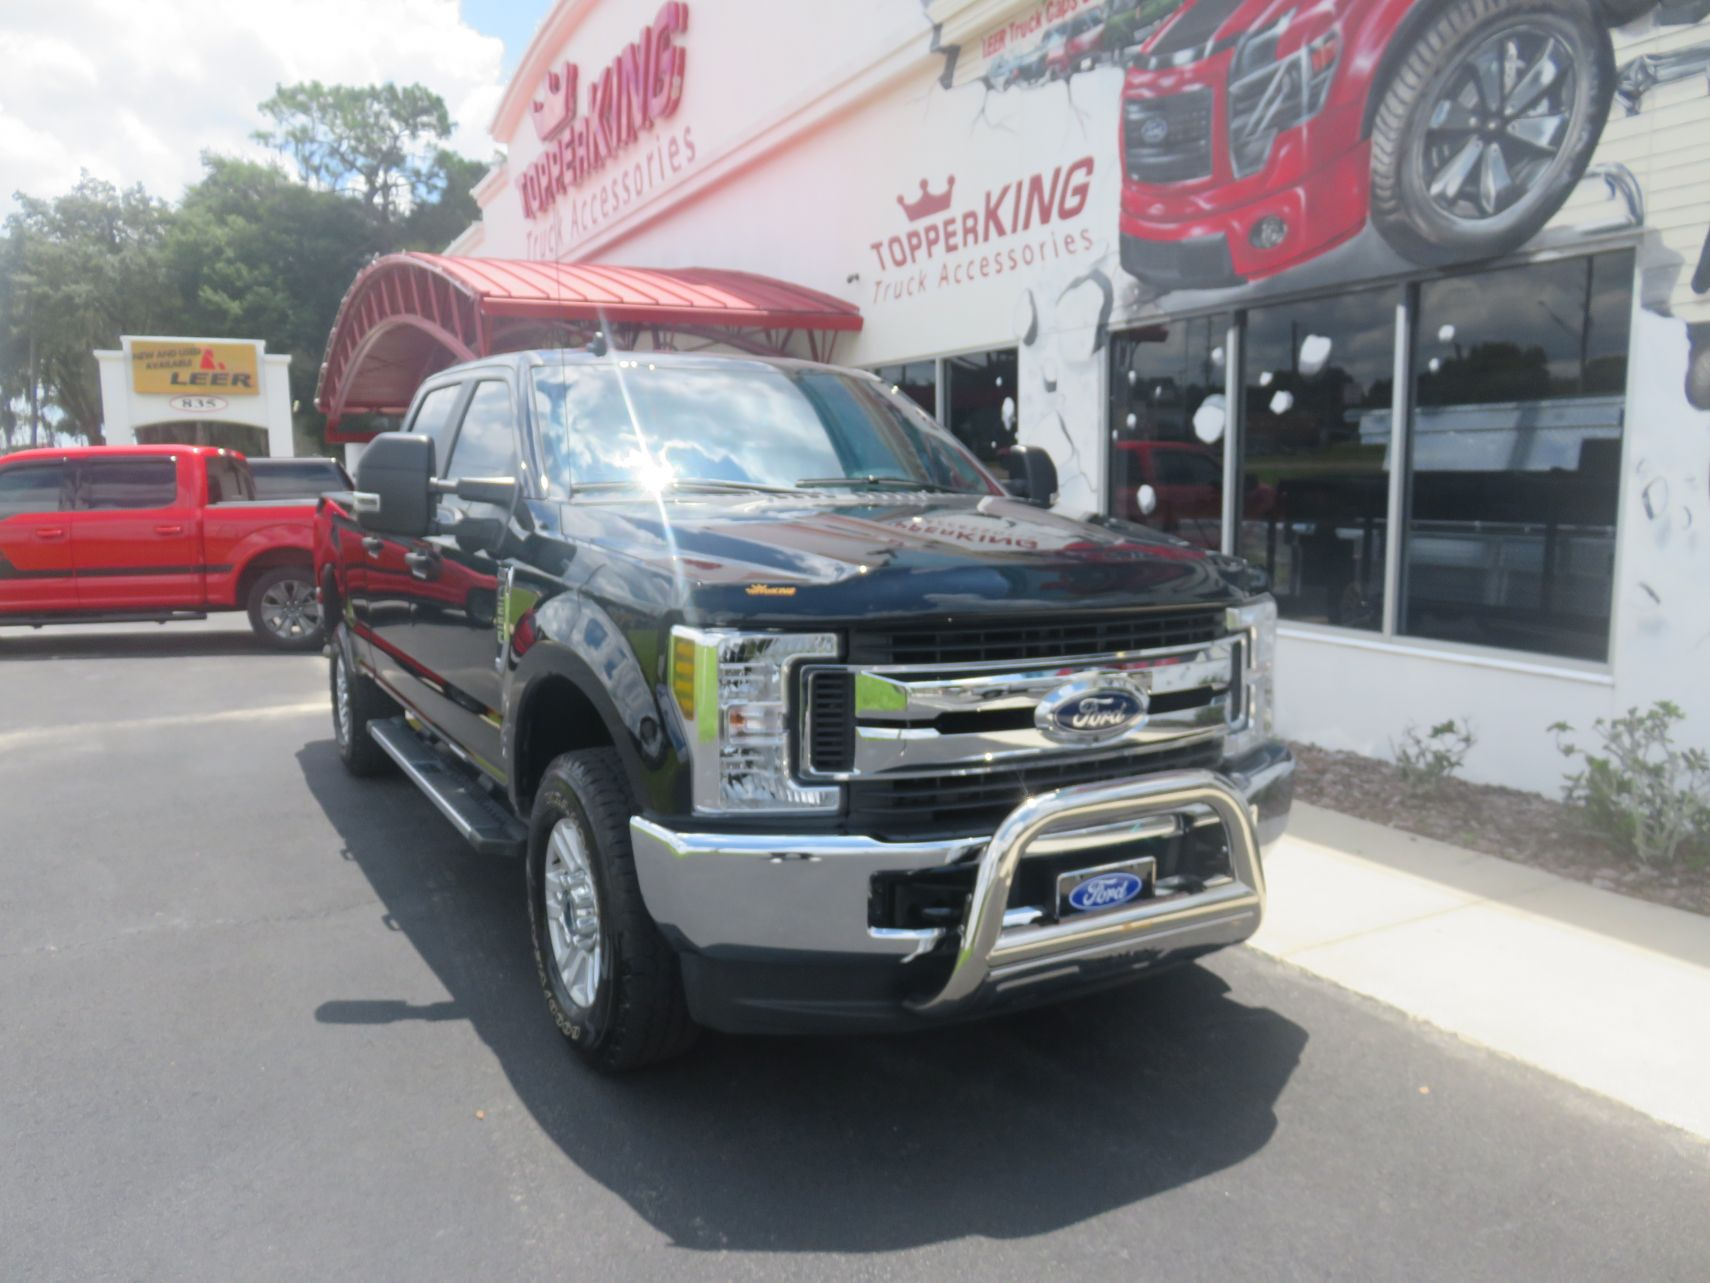 2019 F250 with Bull Bar, Adjustable Hitch, Nerf Bars, Bug Guard by TopperKING in Brandon, FL 813-689-2449 or Clearwater, FL 727-530-9066. Call today!